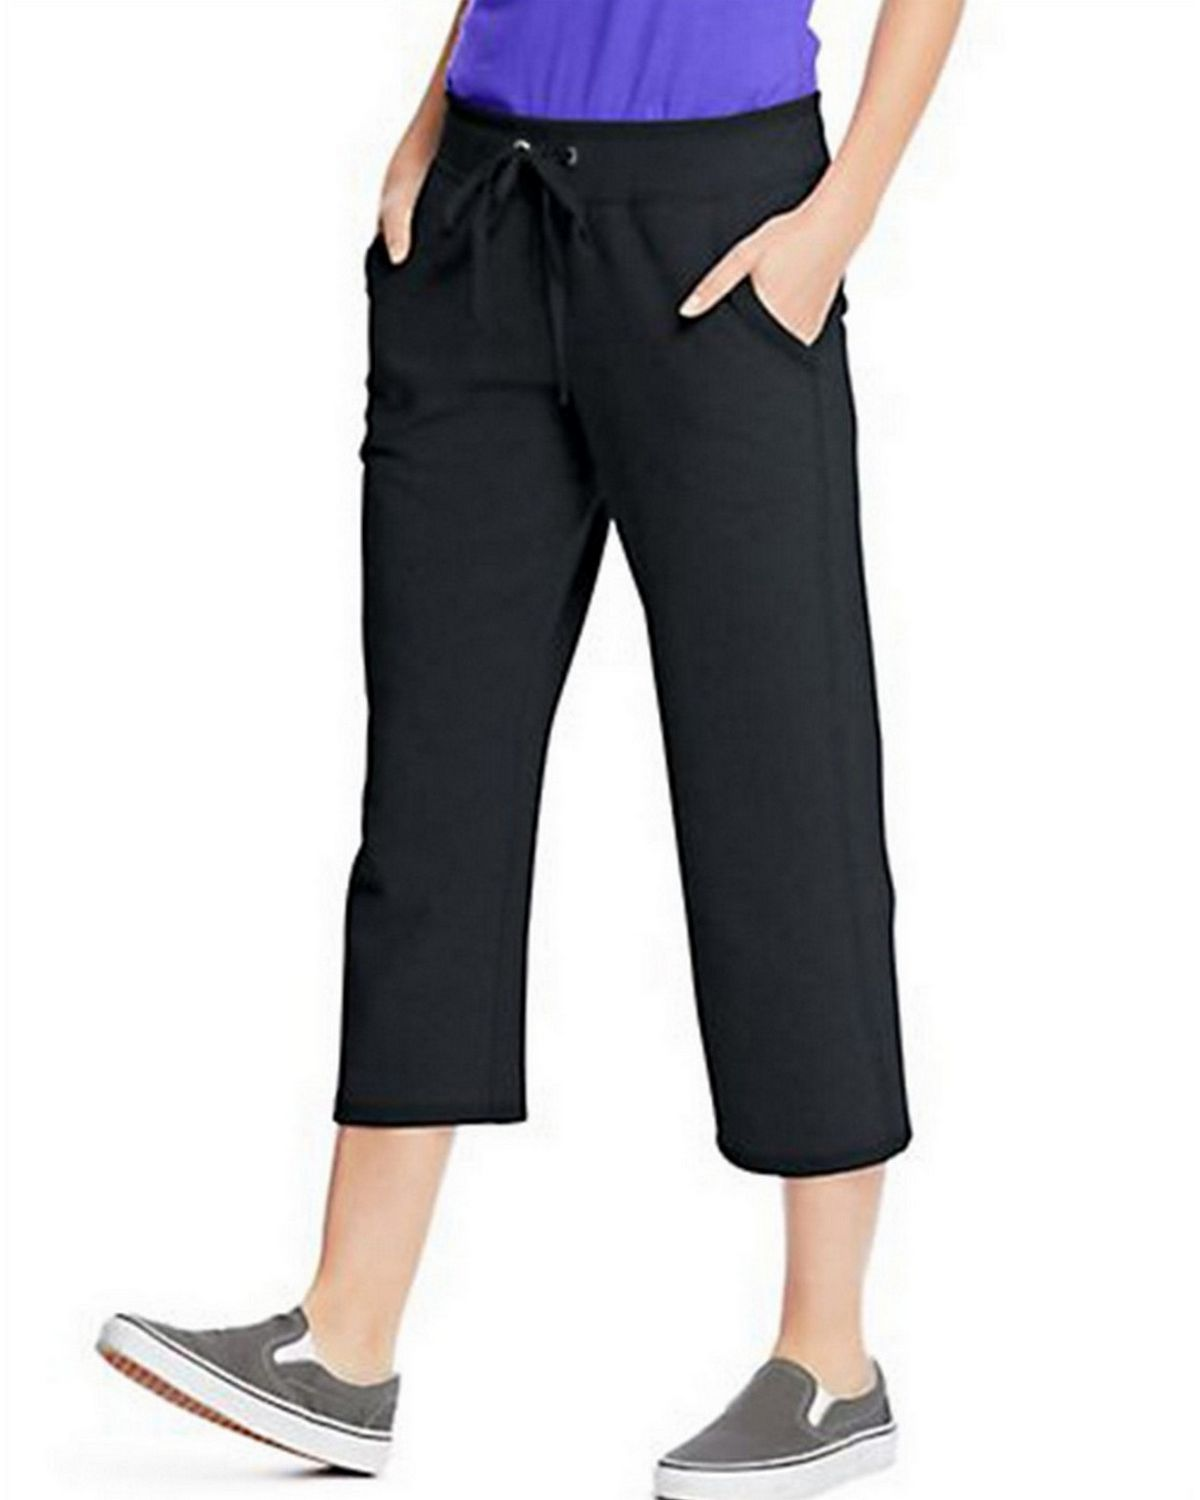 Hanes O4679 Womens French Terry Pocket Capri - Black - L O4679